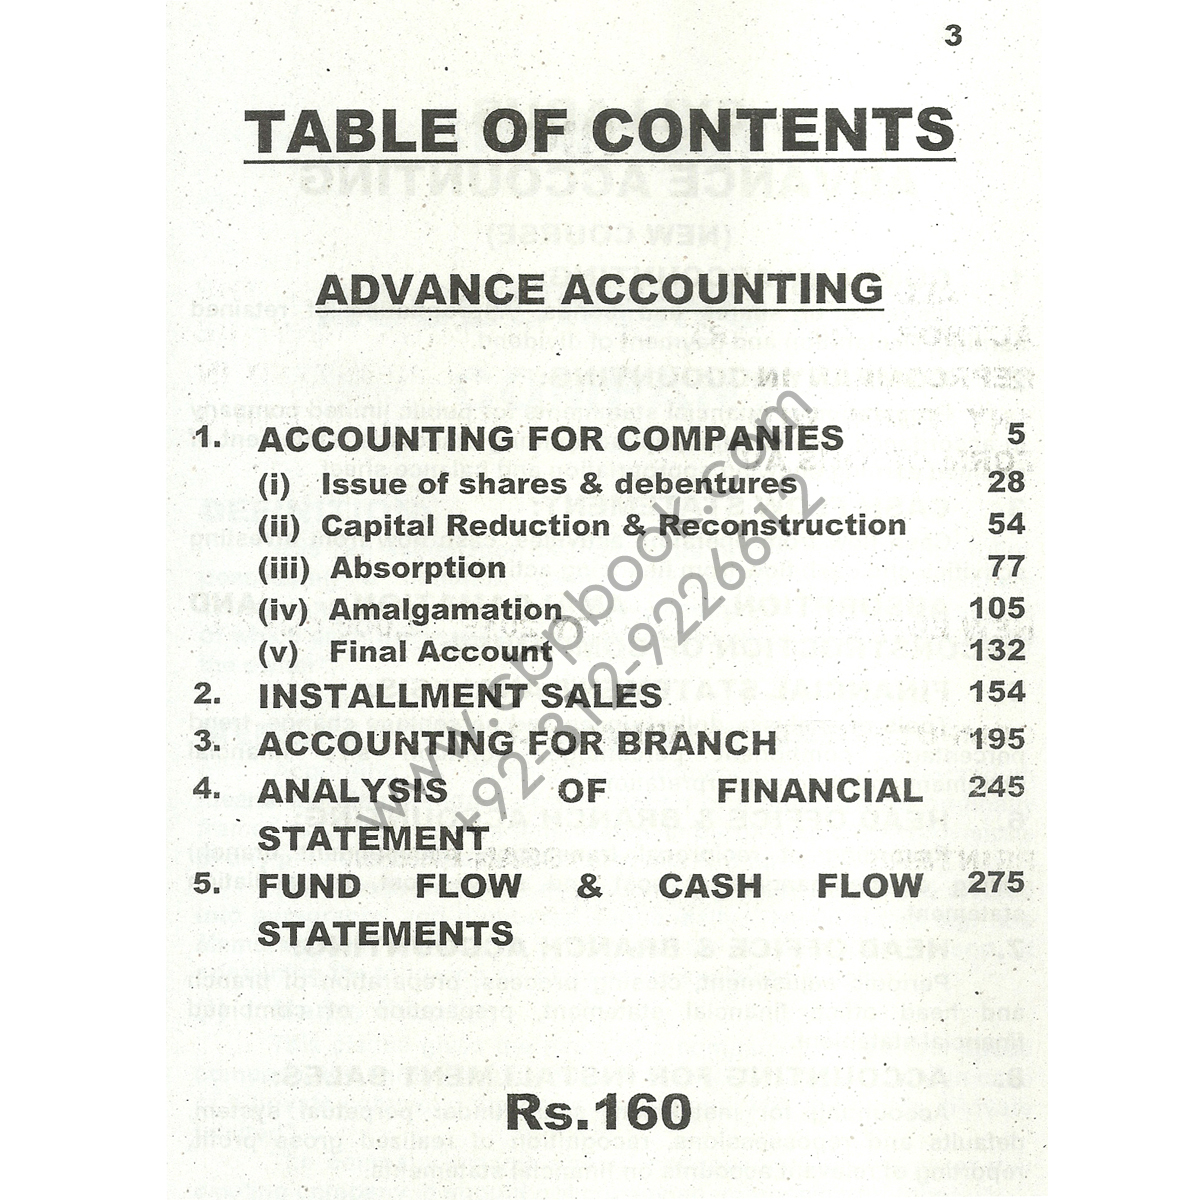 doctoral dissertation in accounting The accounting faculty at chicago publishes the journal of accounting research jar is the oldest private research journal in accounting jar is the oldest private research journal in accounting it is generally considered to be one of the top tier accounting research journals in the world.